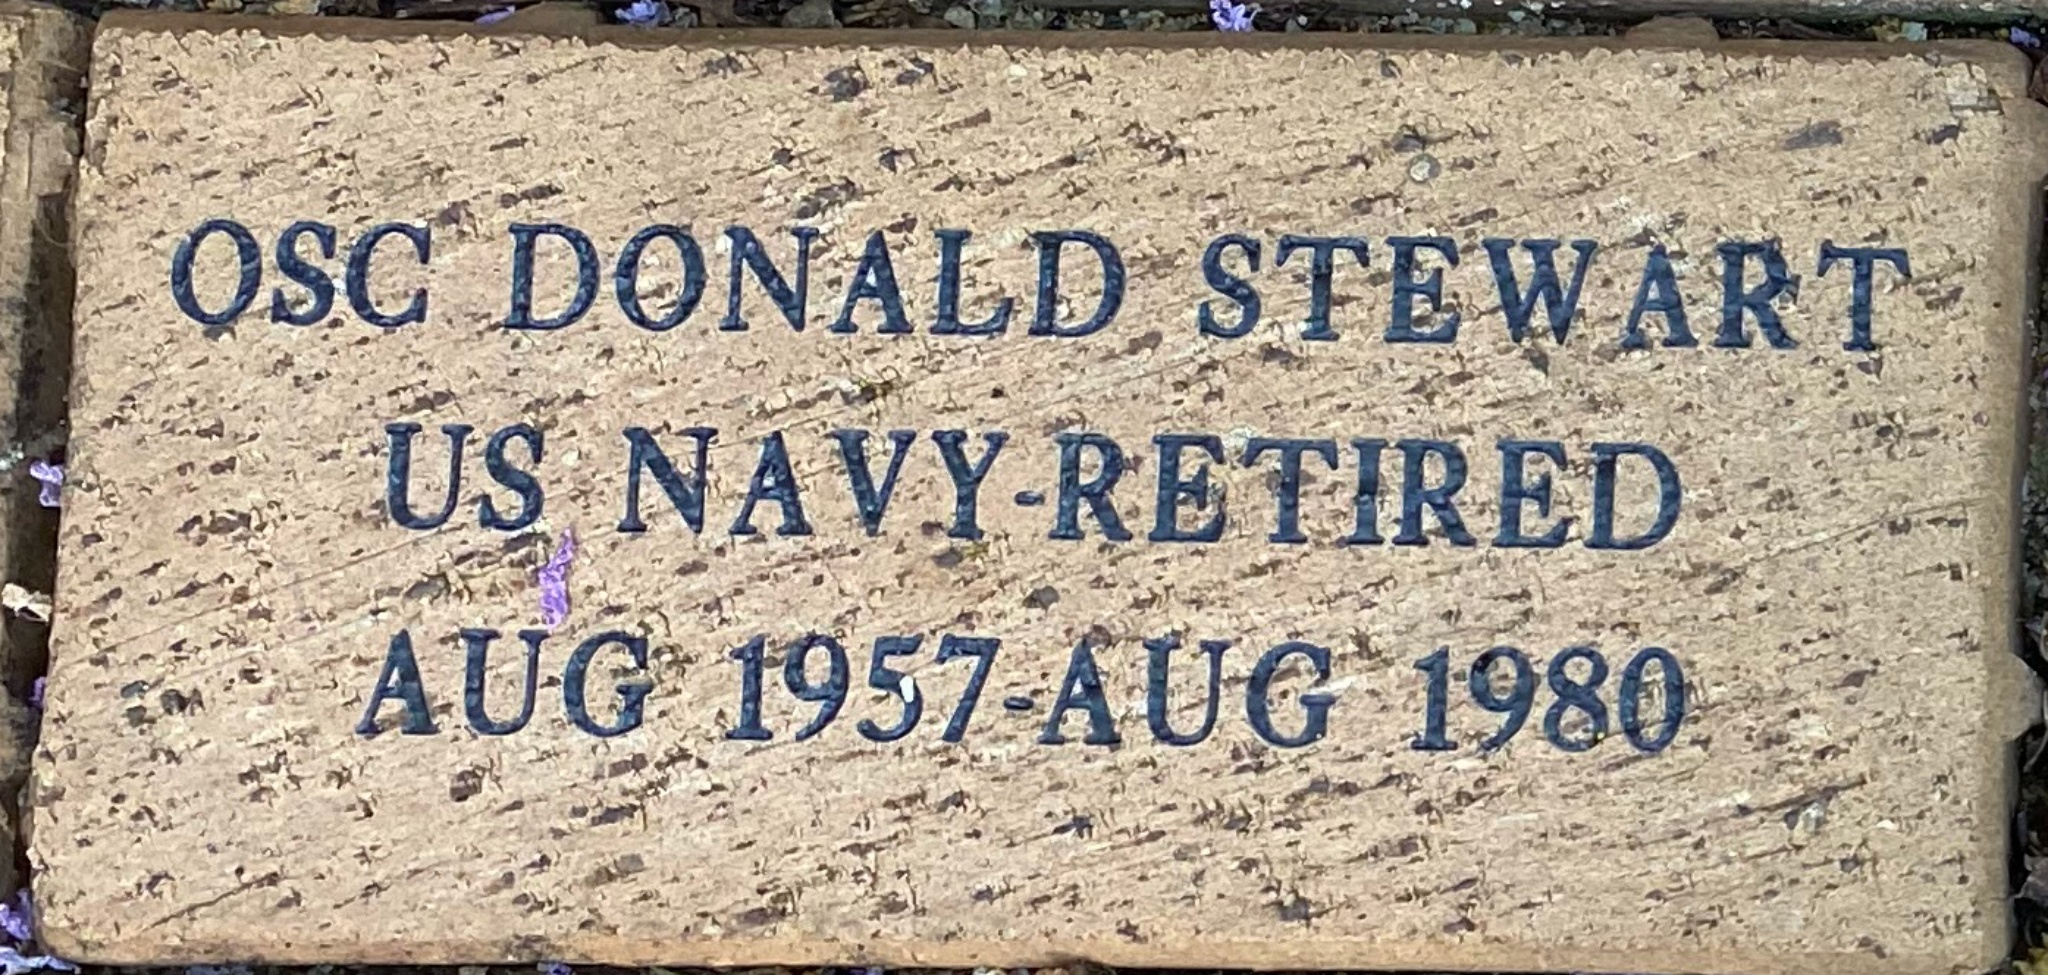 OSC DONALD STEWART US NAVY-RTIRED AUG 1957-AUG 1980